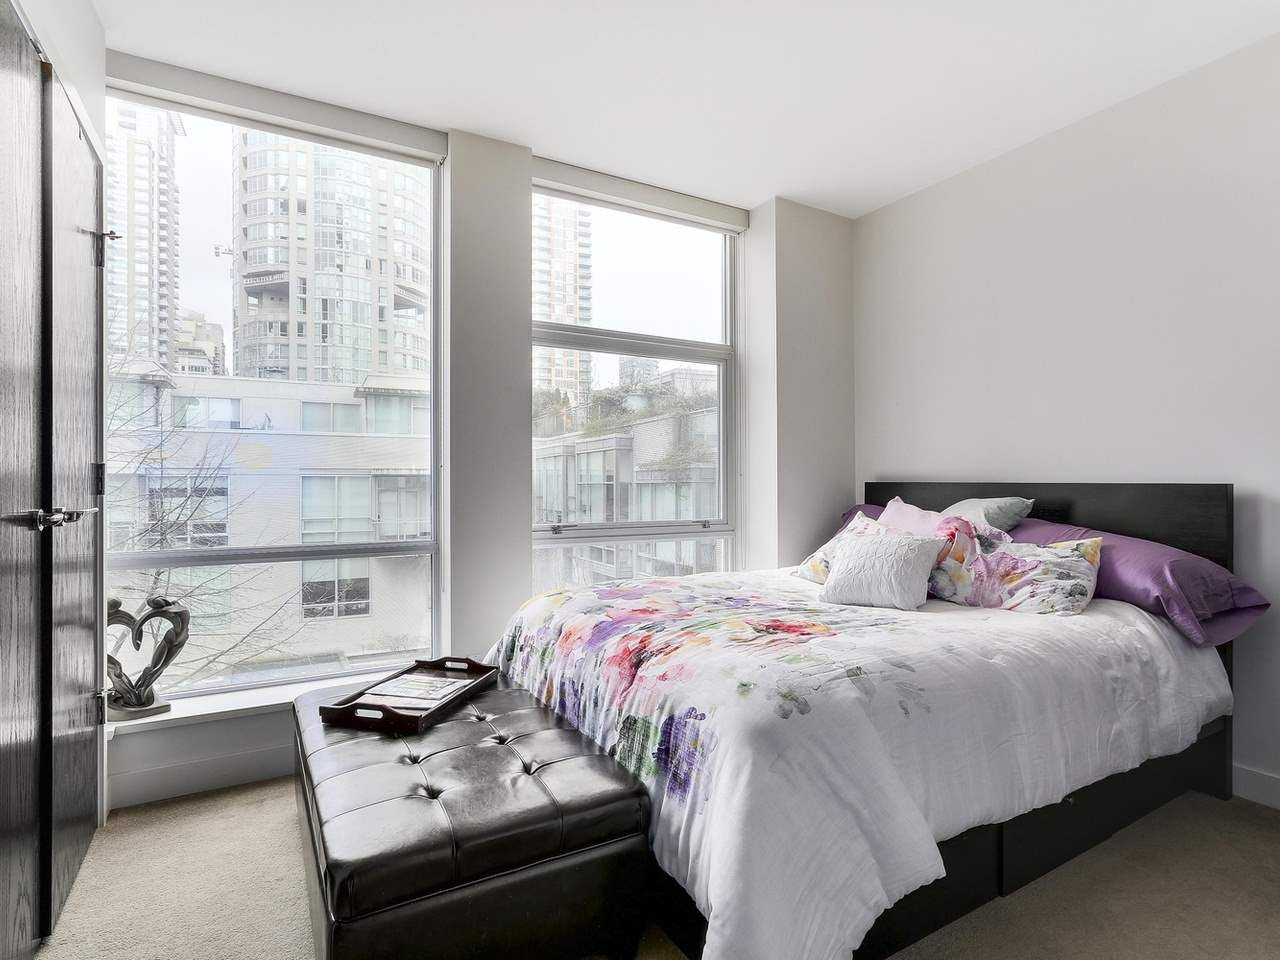 Photo 15: Photos: 401 1455 HOWE STREET in Vancouver: Yaletown Condo for sale (Vancouver West)  : MLS®# R2145939